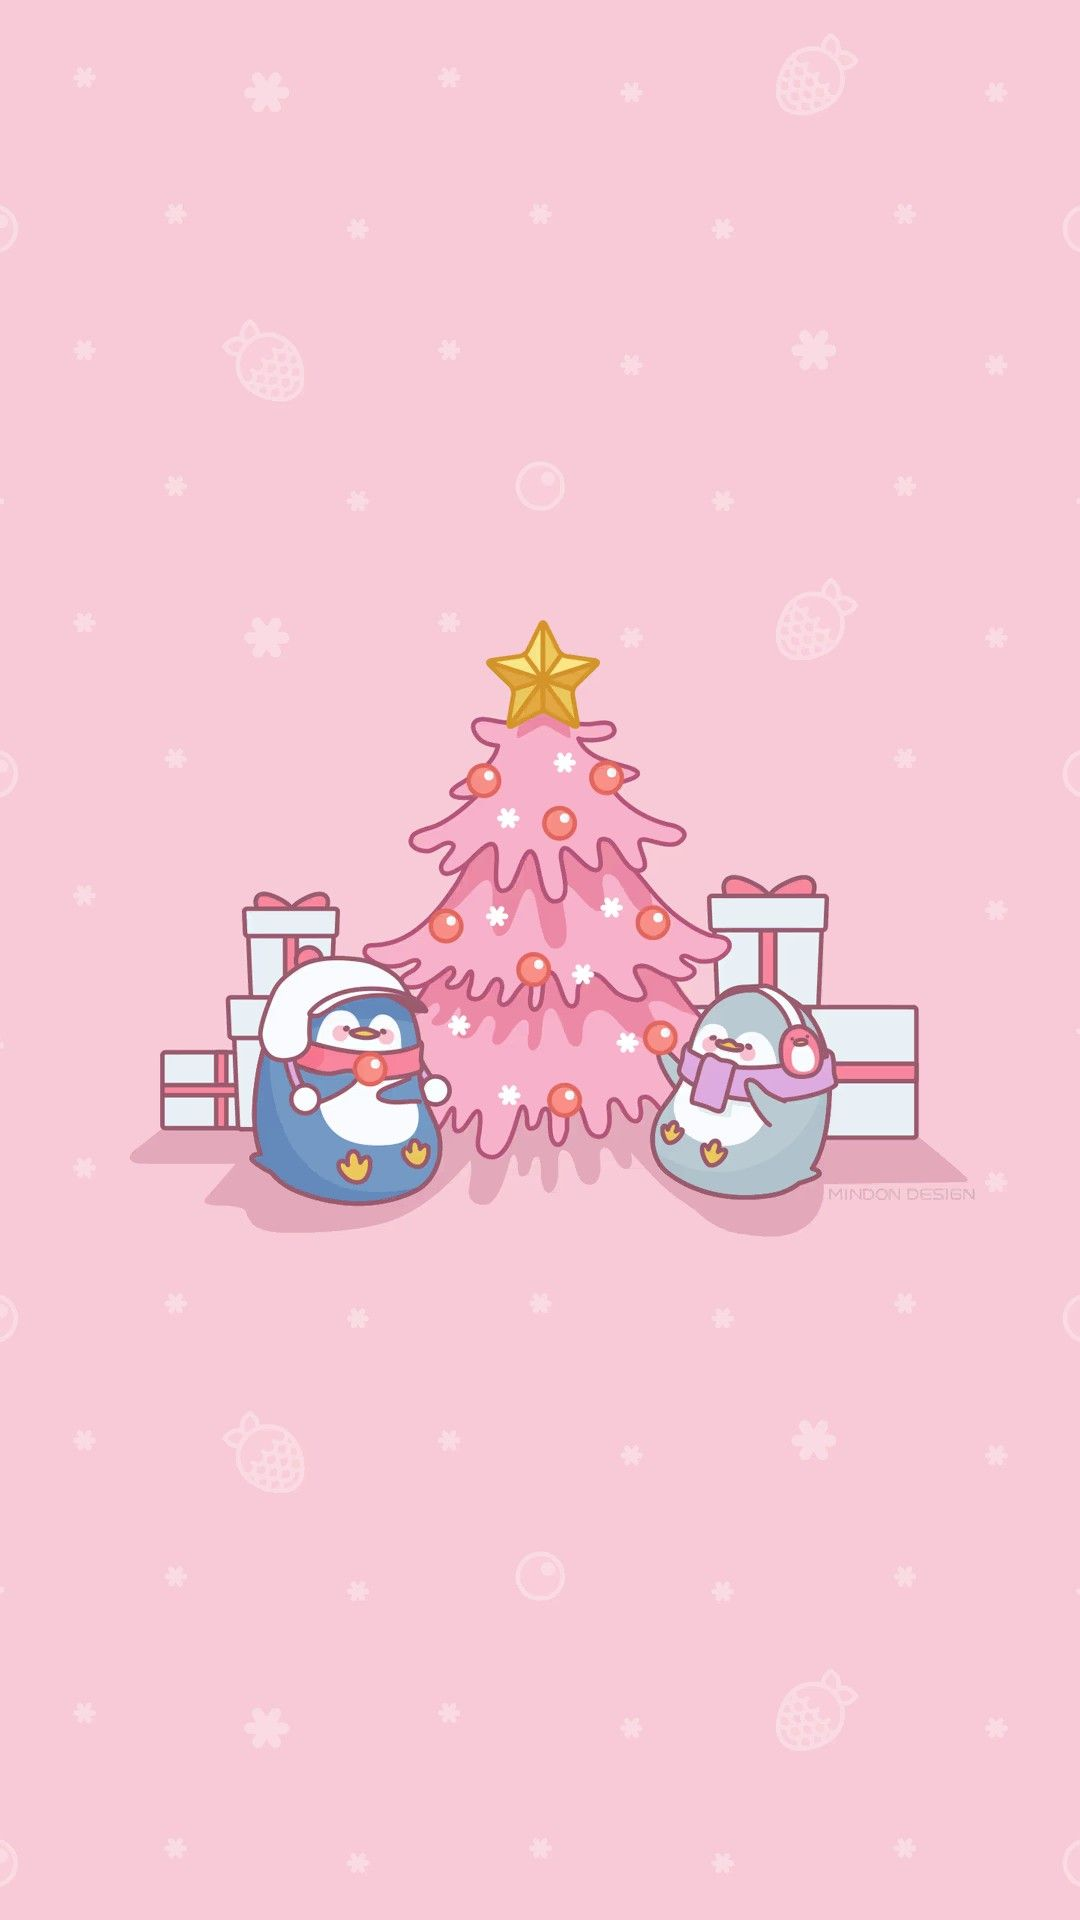 Pin By Terri Kitiona On Christmas Cuties Merry Christmas Wallpaper Christmas Wallpaper Christmas Background